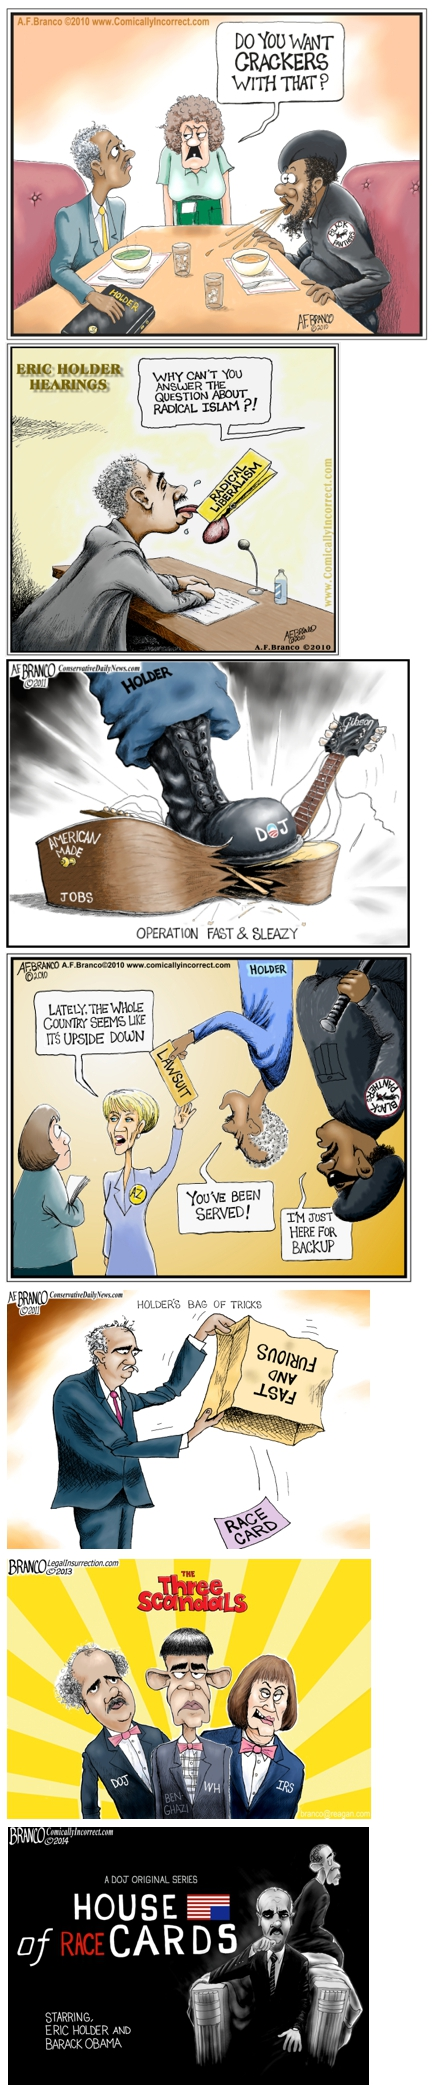 Holder cartoons in Review